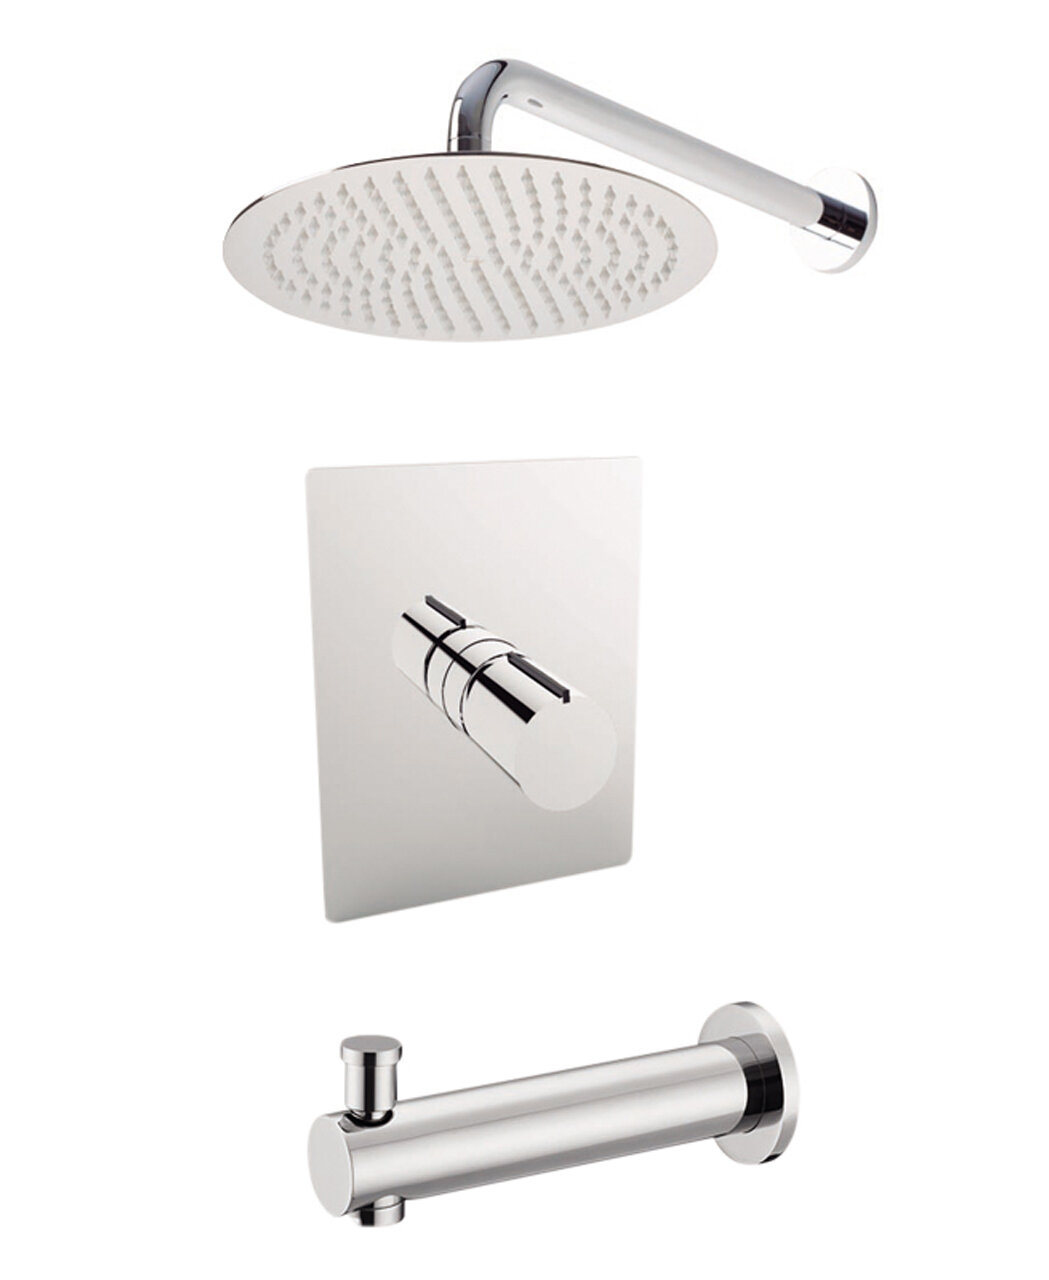 Barcelona Diverter Dual Function Volume Control Tub And Shower Faucet With Valve And Trim